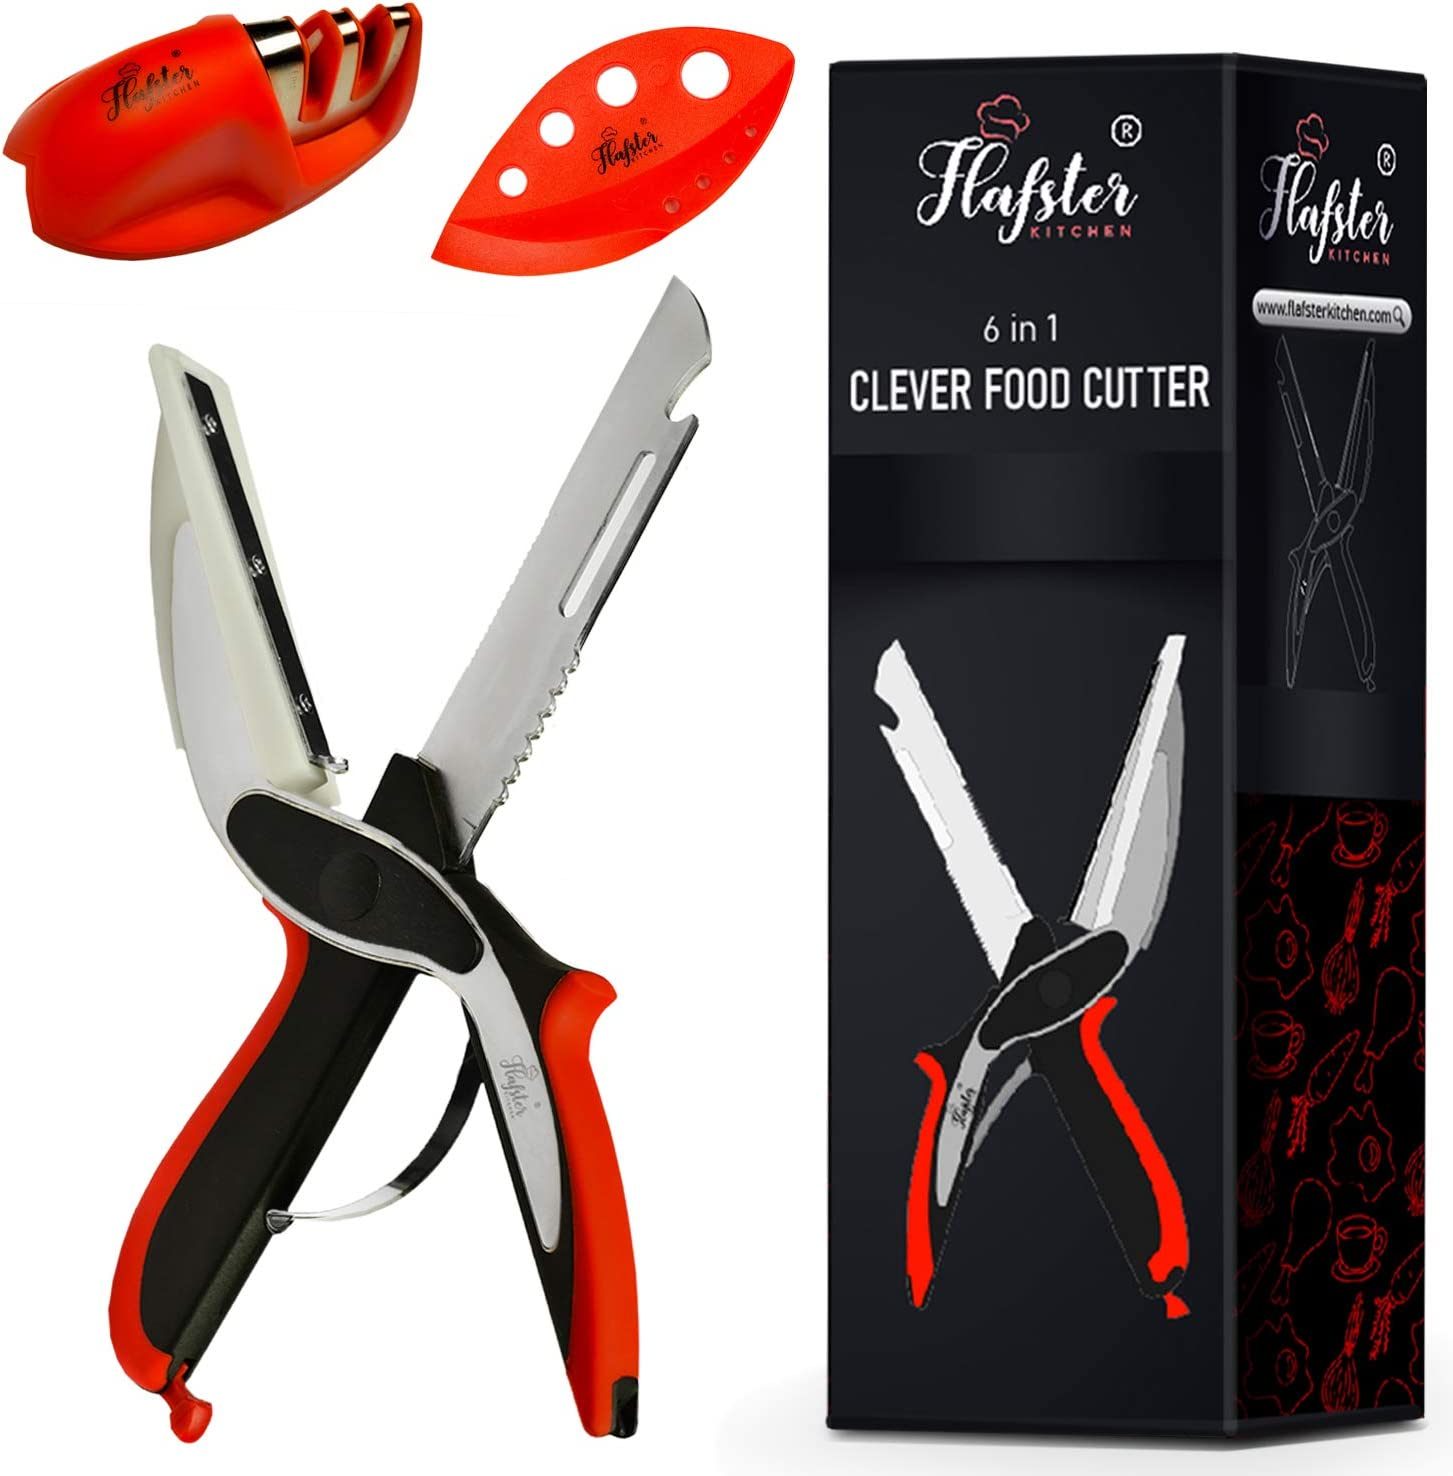 Clever Cutter 6 in 1 - Fun Cooking Gadget - Food Chopper - Vegetable cutter- Clever Cutter Kitchen Scissors - Food Shears -Kitchen Knife with Cutting Board -Knife Sharpener and Herb Stripper